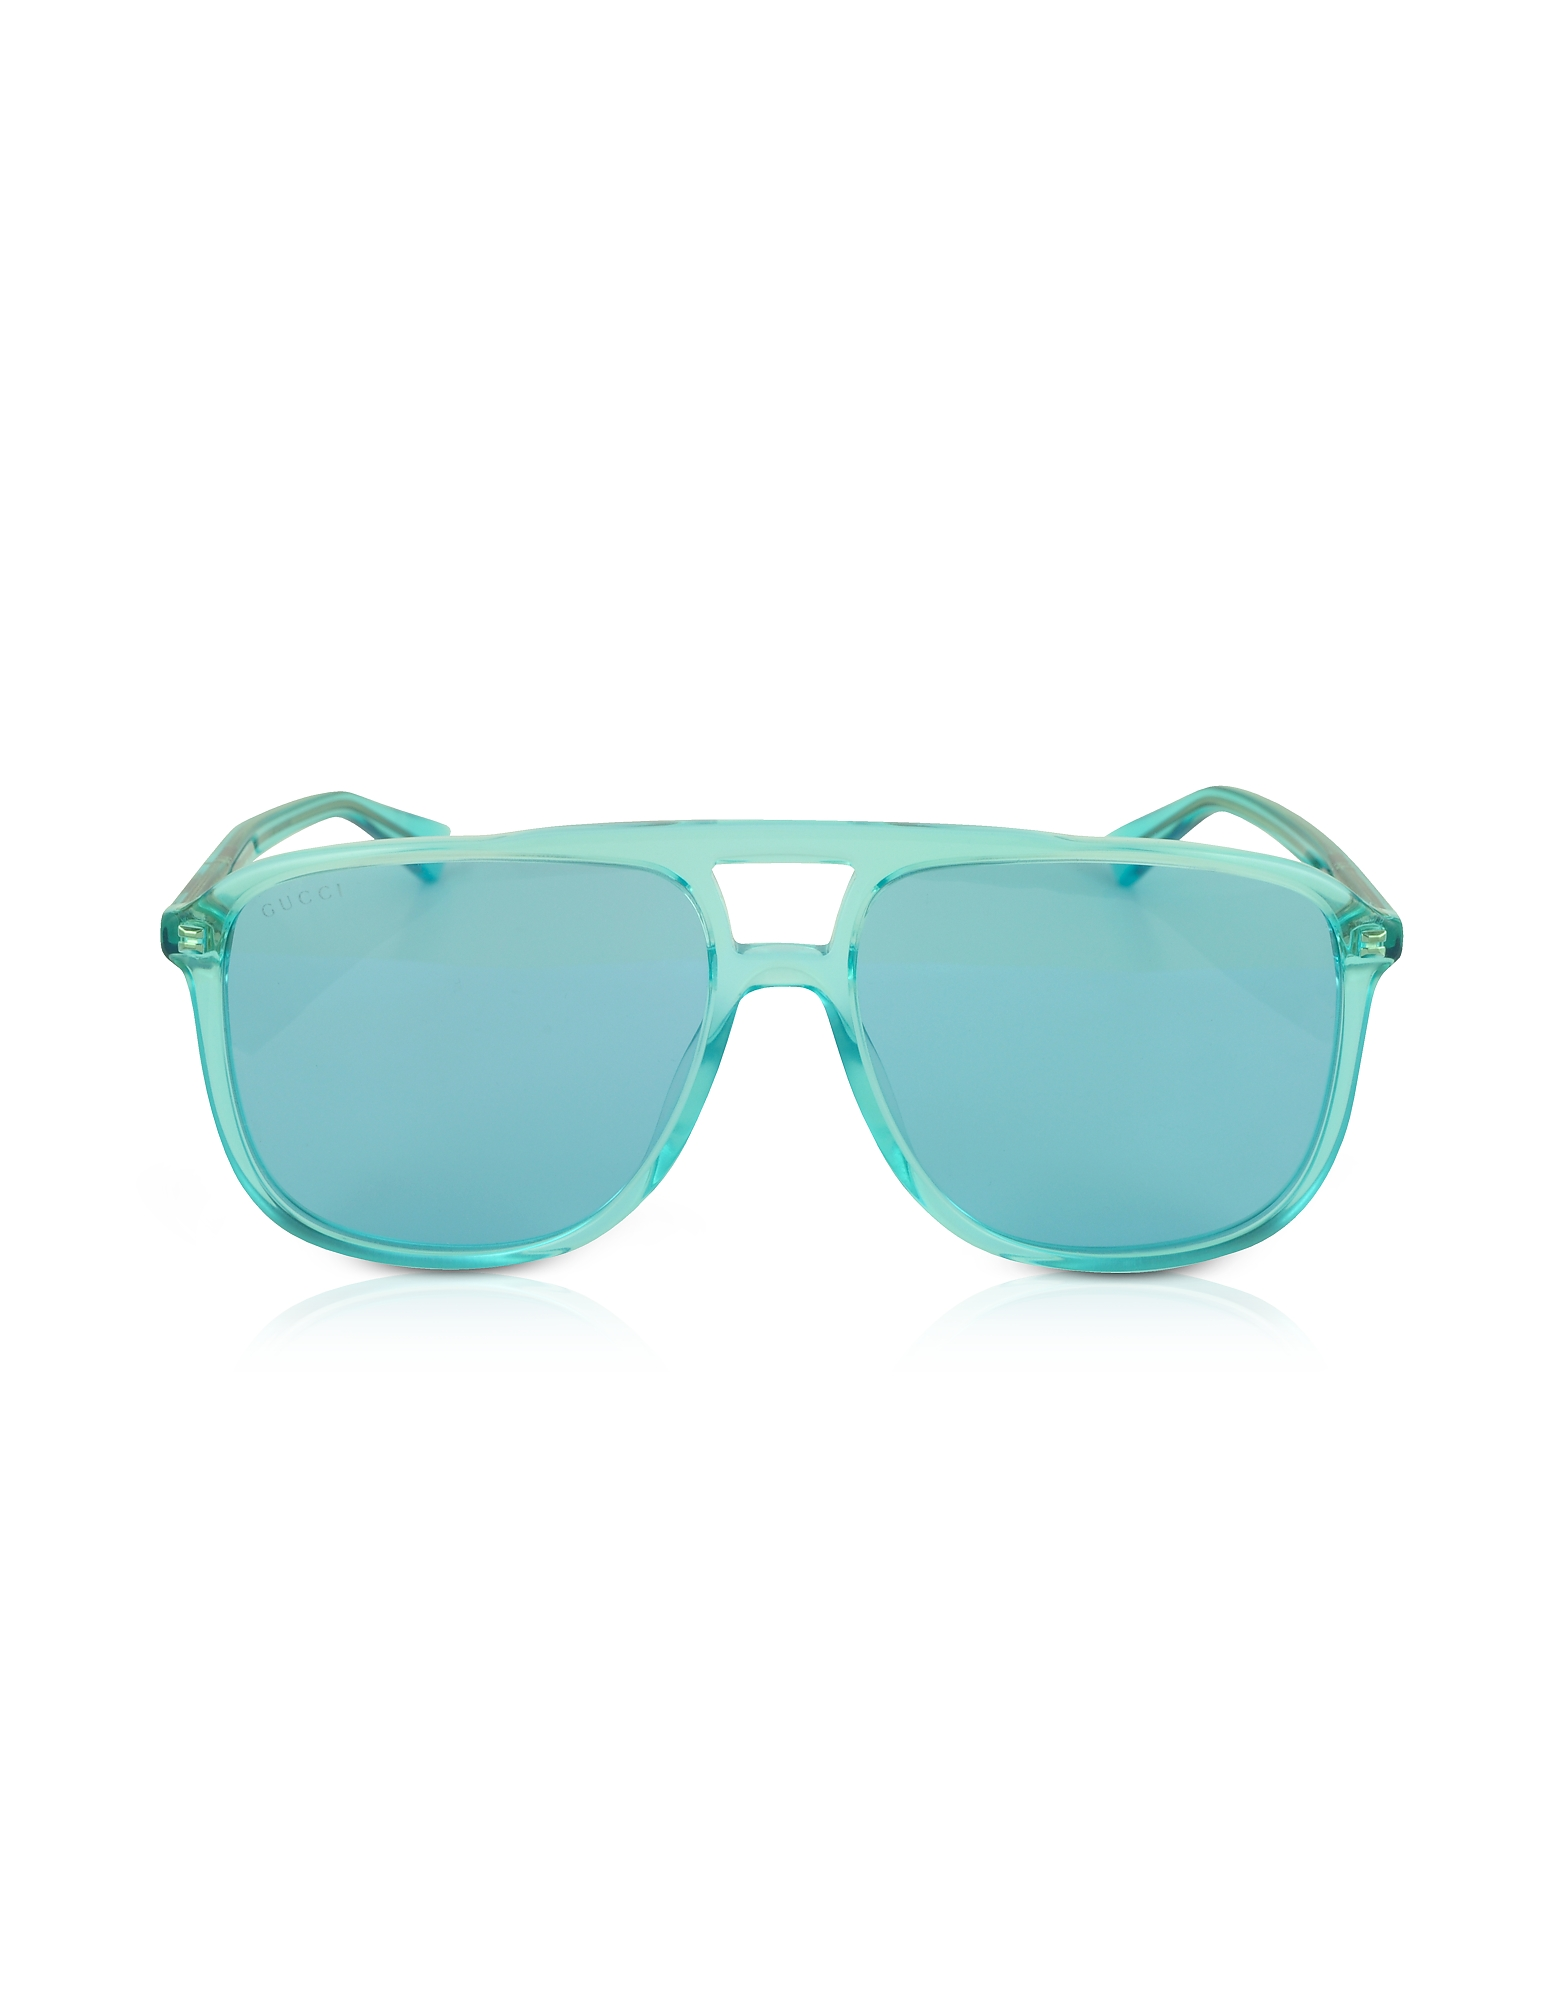 Gucci Designer Sunglasses, GG0262S Rectangular-frame Blue Acetate Sunglasses